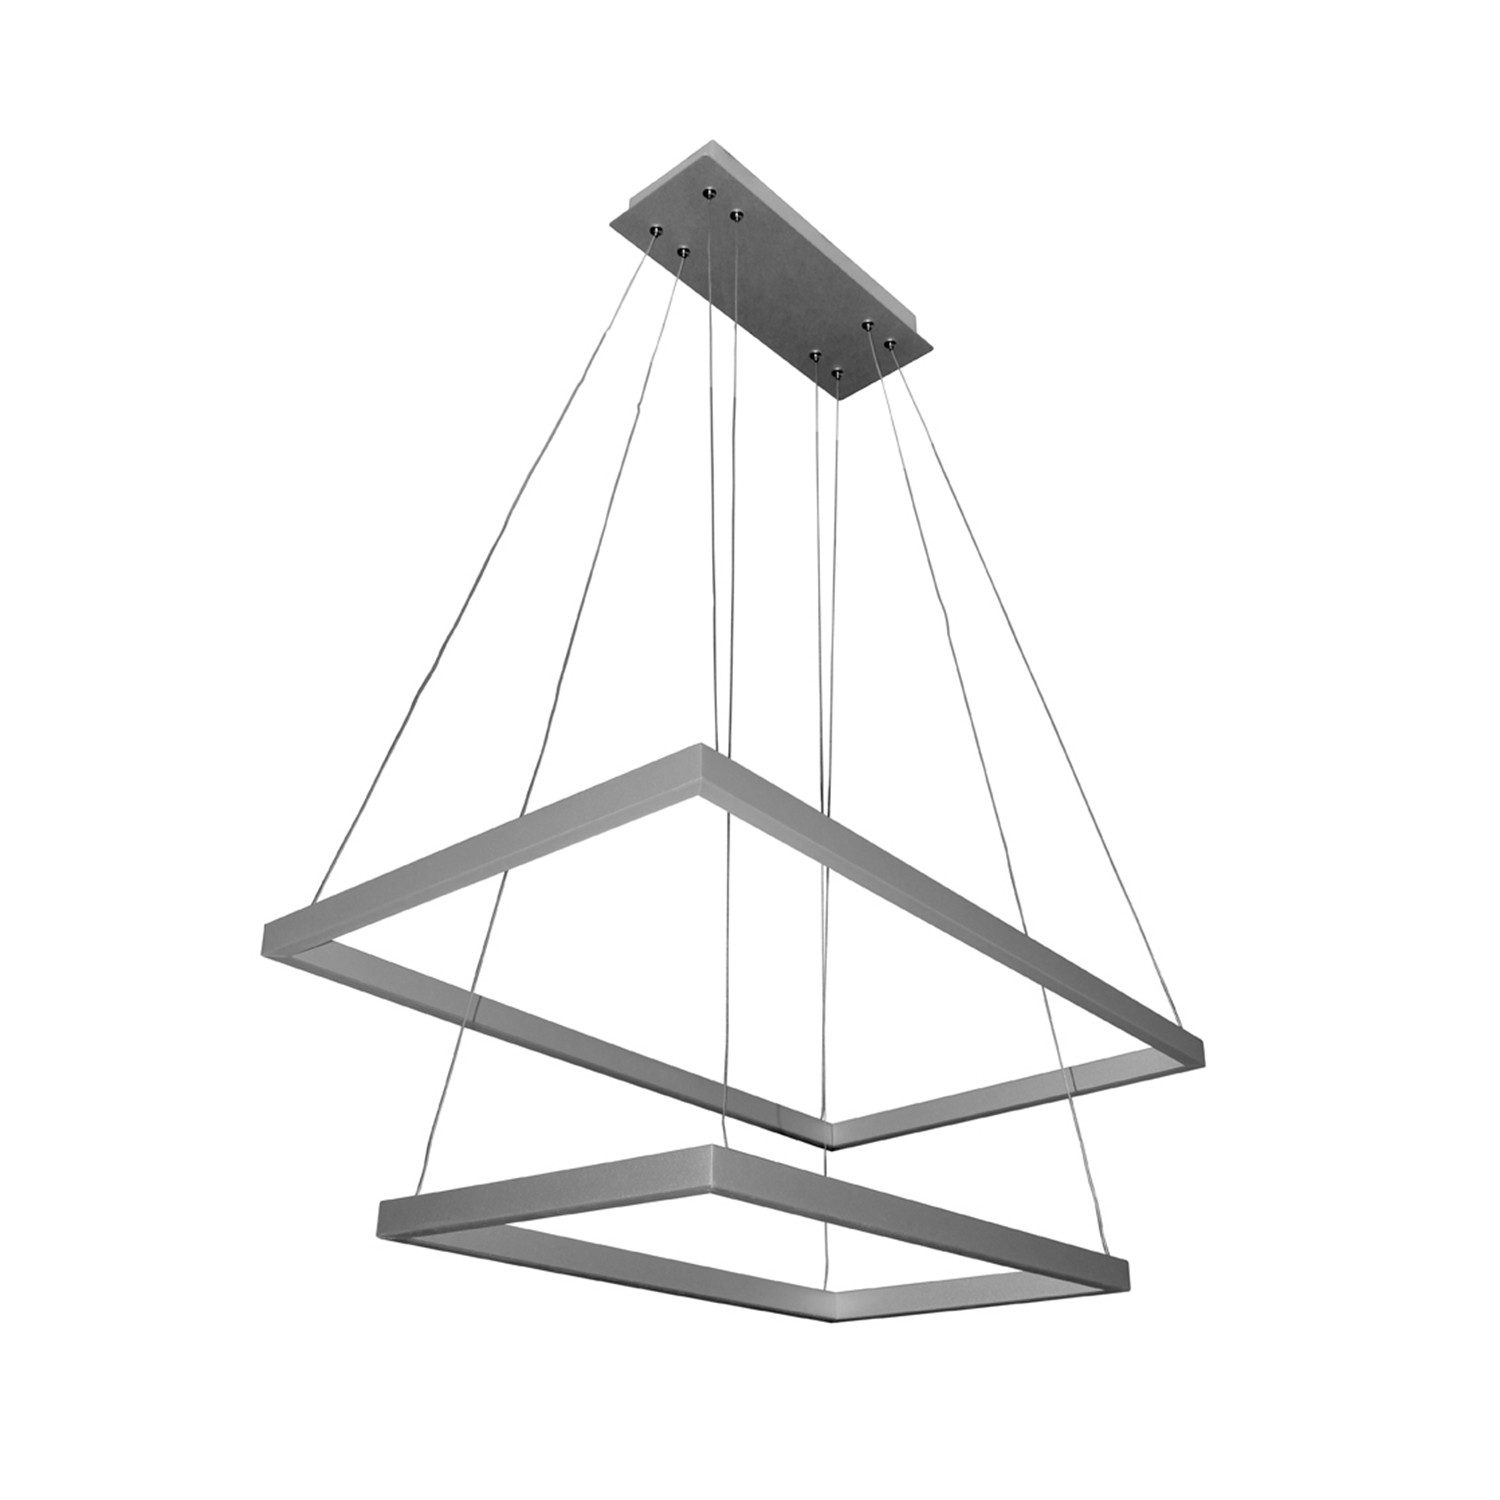 Atria duo two tier chandelier silver vonn touch of modern atria duo two tier chandelier silver arubaitofo Image collections